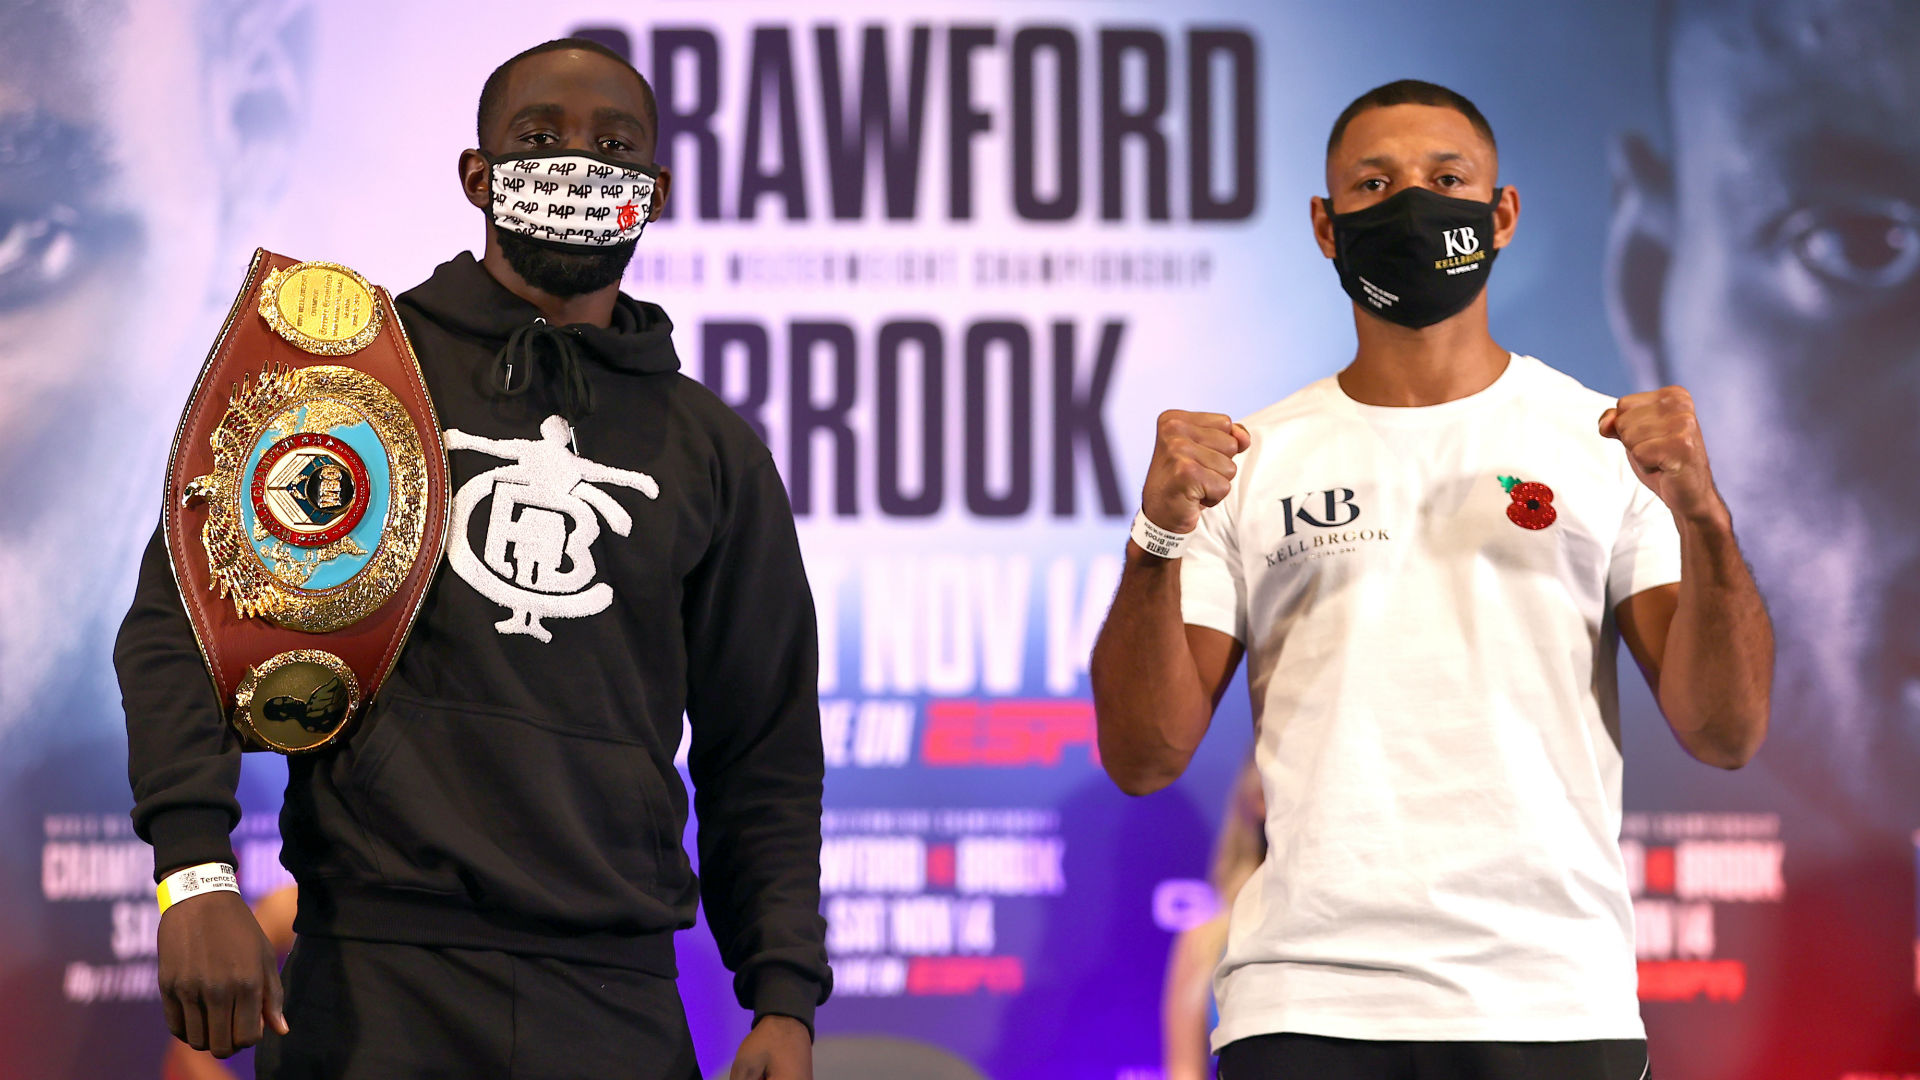 Terence Crawford vs. Kell Brook: 'Bud' aims to stay perfect against former world champion